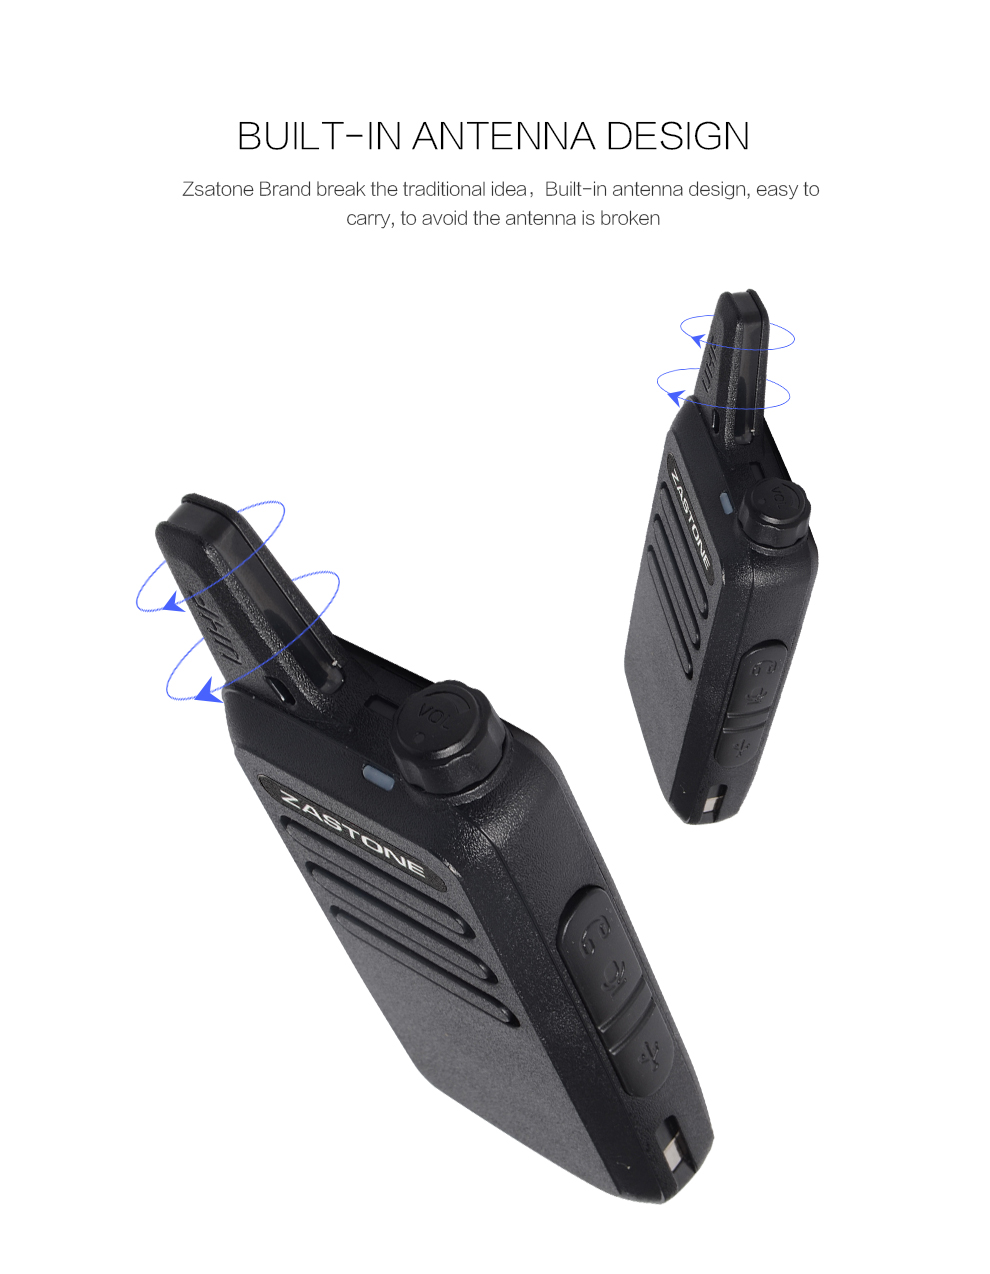 New arrival UHF MINI two way radio ZASTONE X6 mini portable walkie talkie